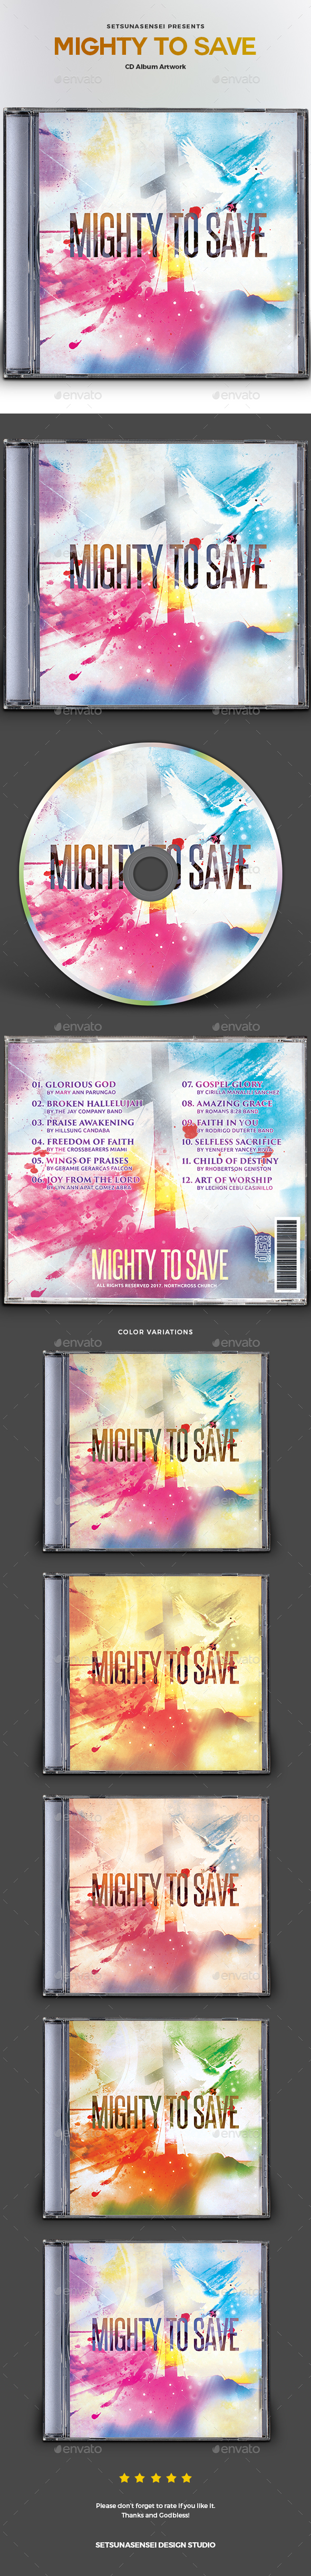 Mighty to Save CD Album Artwork - CD & DVD Artwork Print Templates